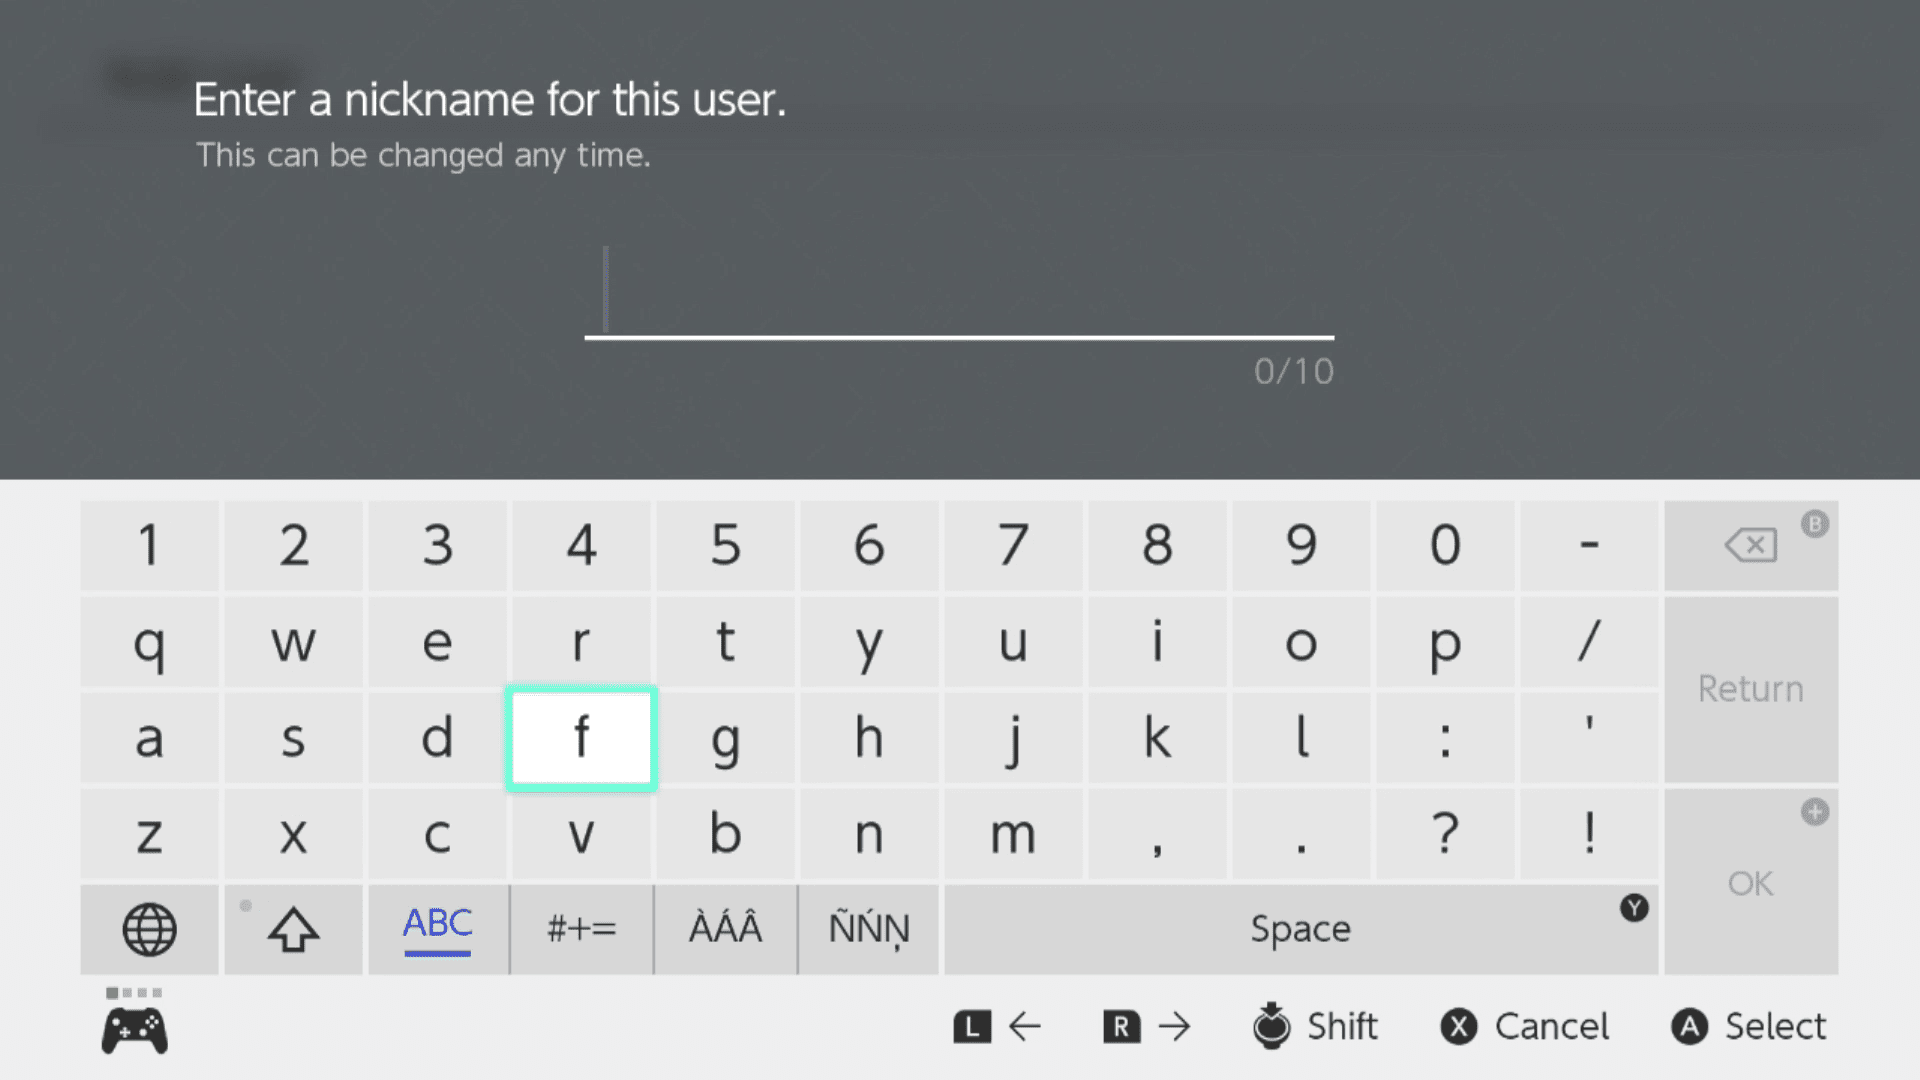 Entering a user nickname on Nintendo Switch.